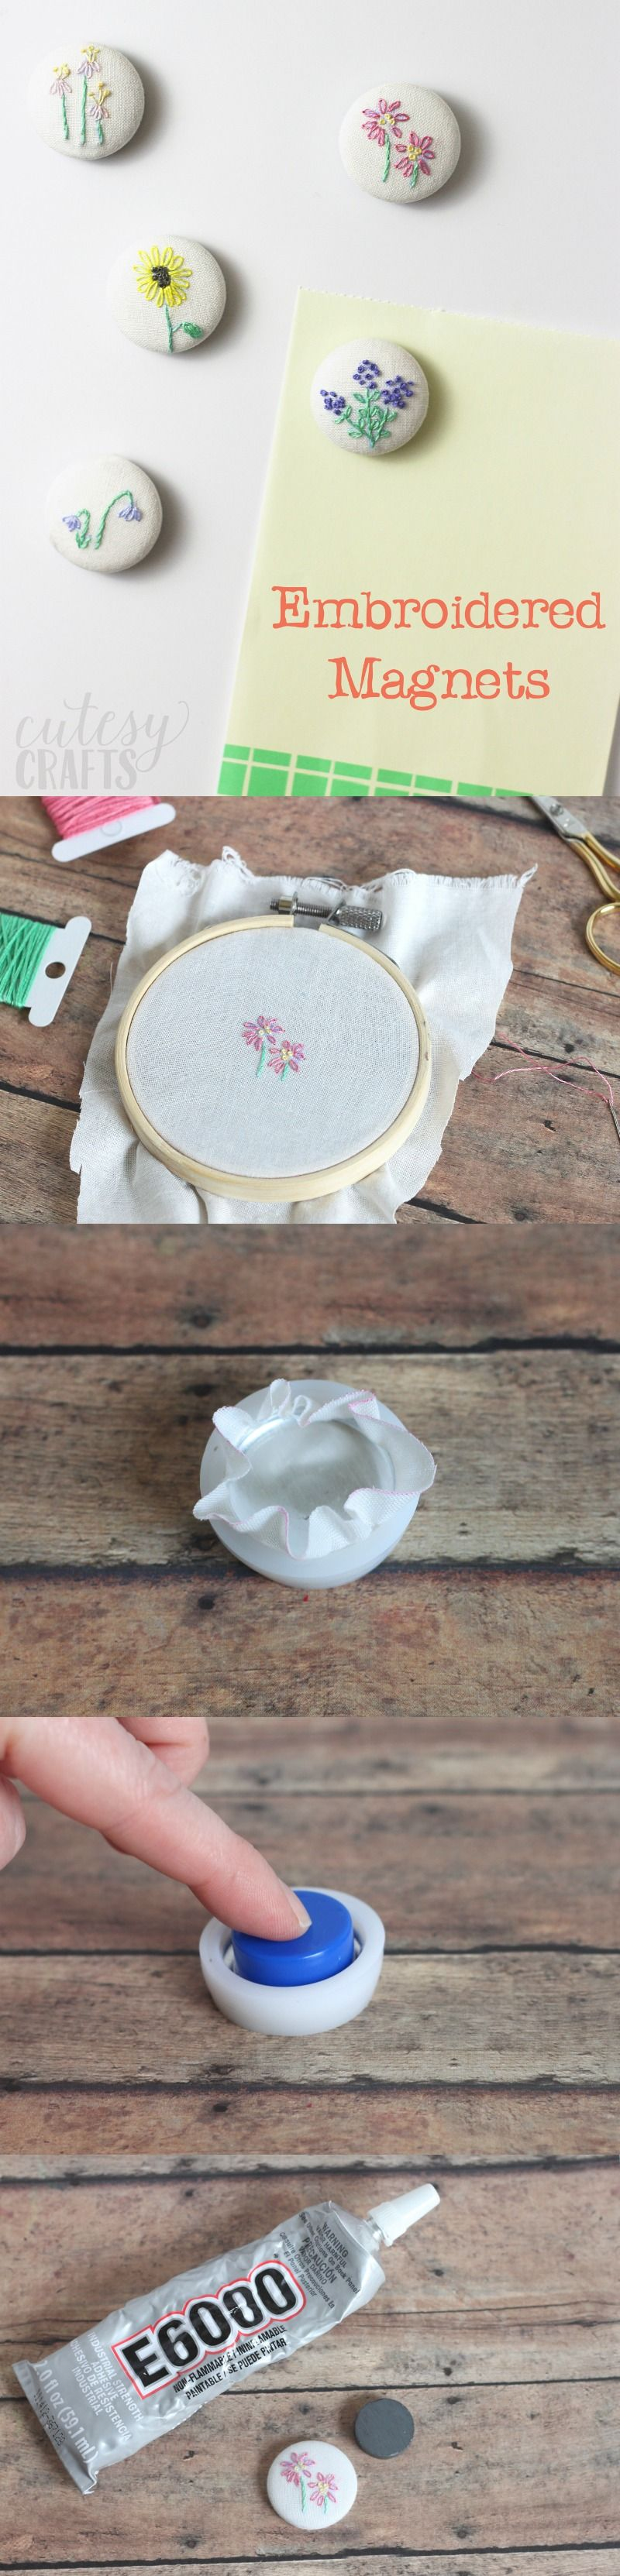 Diy magnets with hand embroidery hand embroidery magnets and